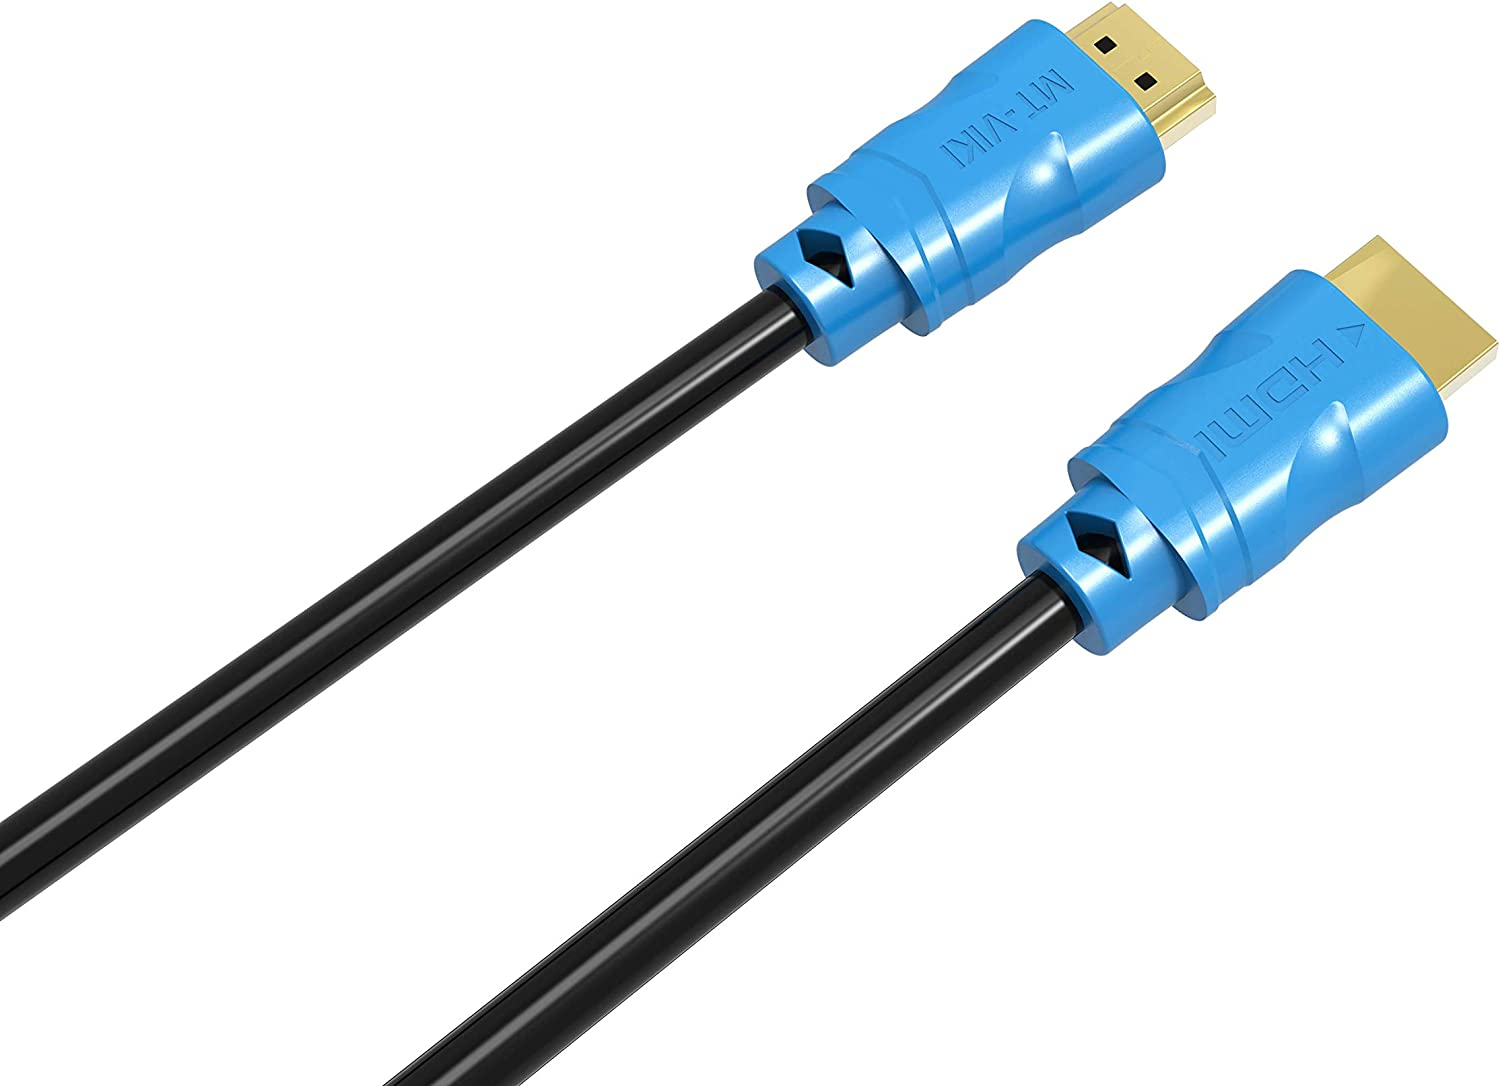 4K @30Hz Standard Twin KVM Switch Cable 2pack 1.8m MT-VIKI HDMI KVM Cables with USB A to B